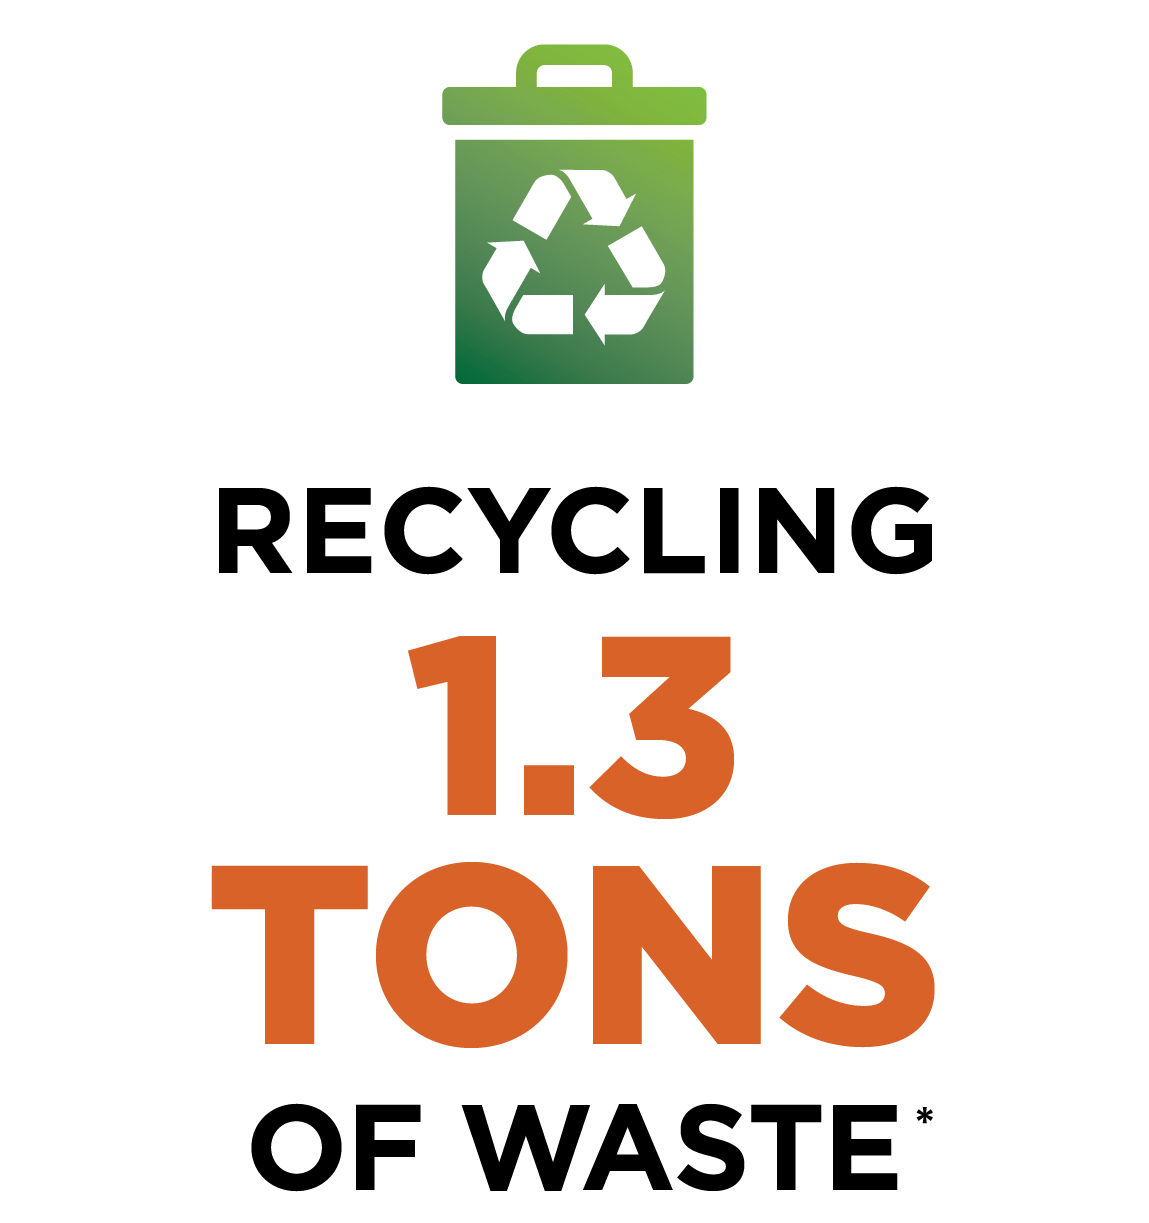 Recycling 1.3 tons of waste